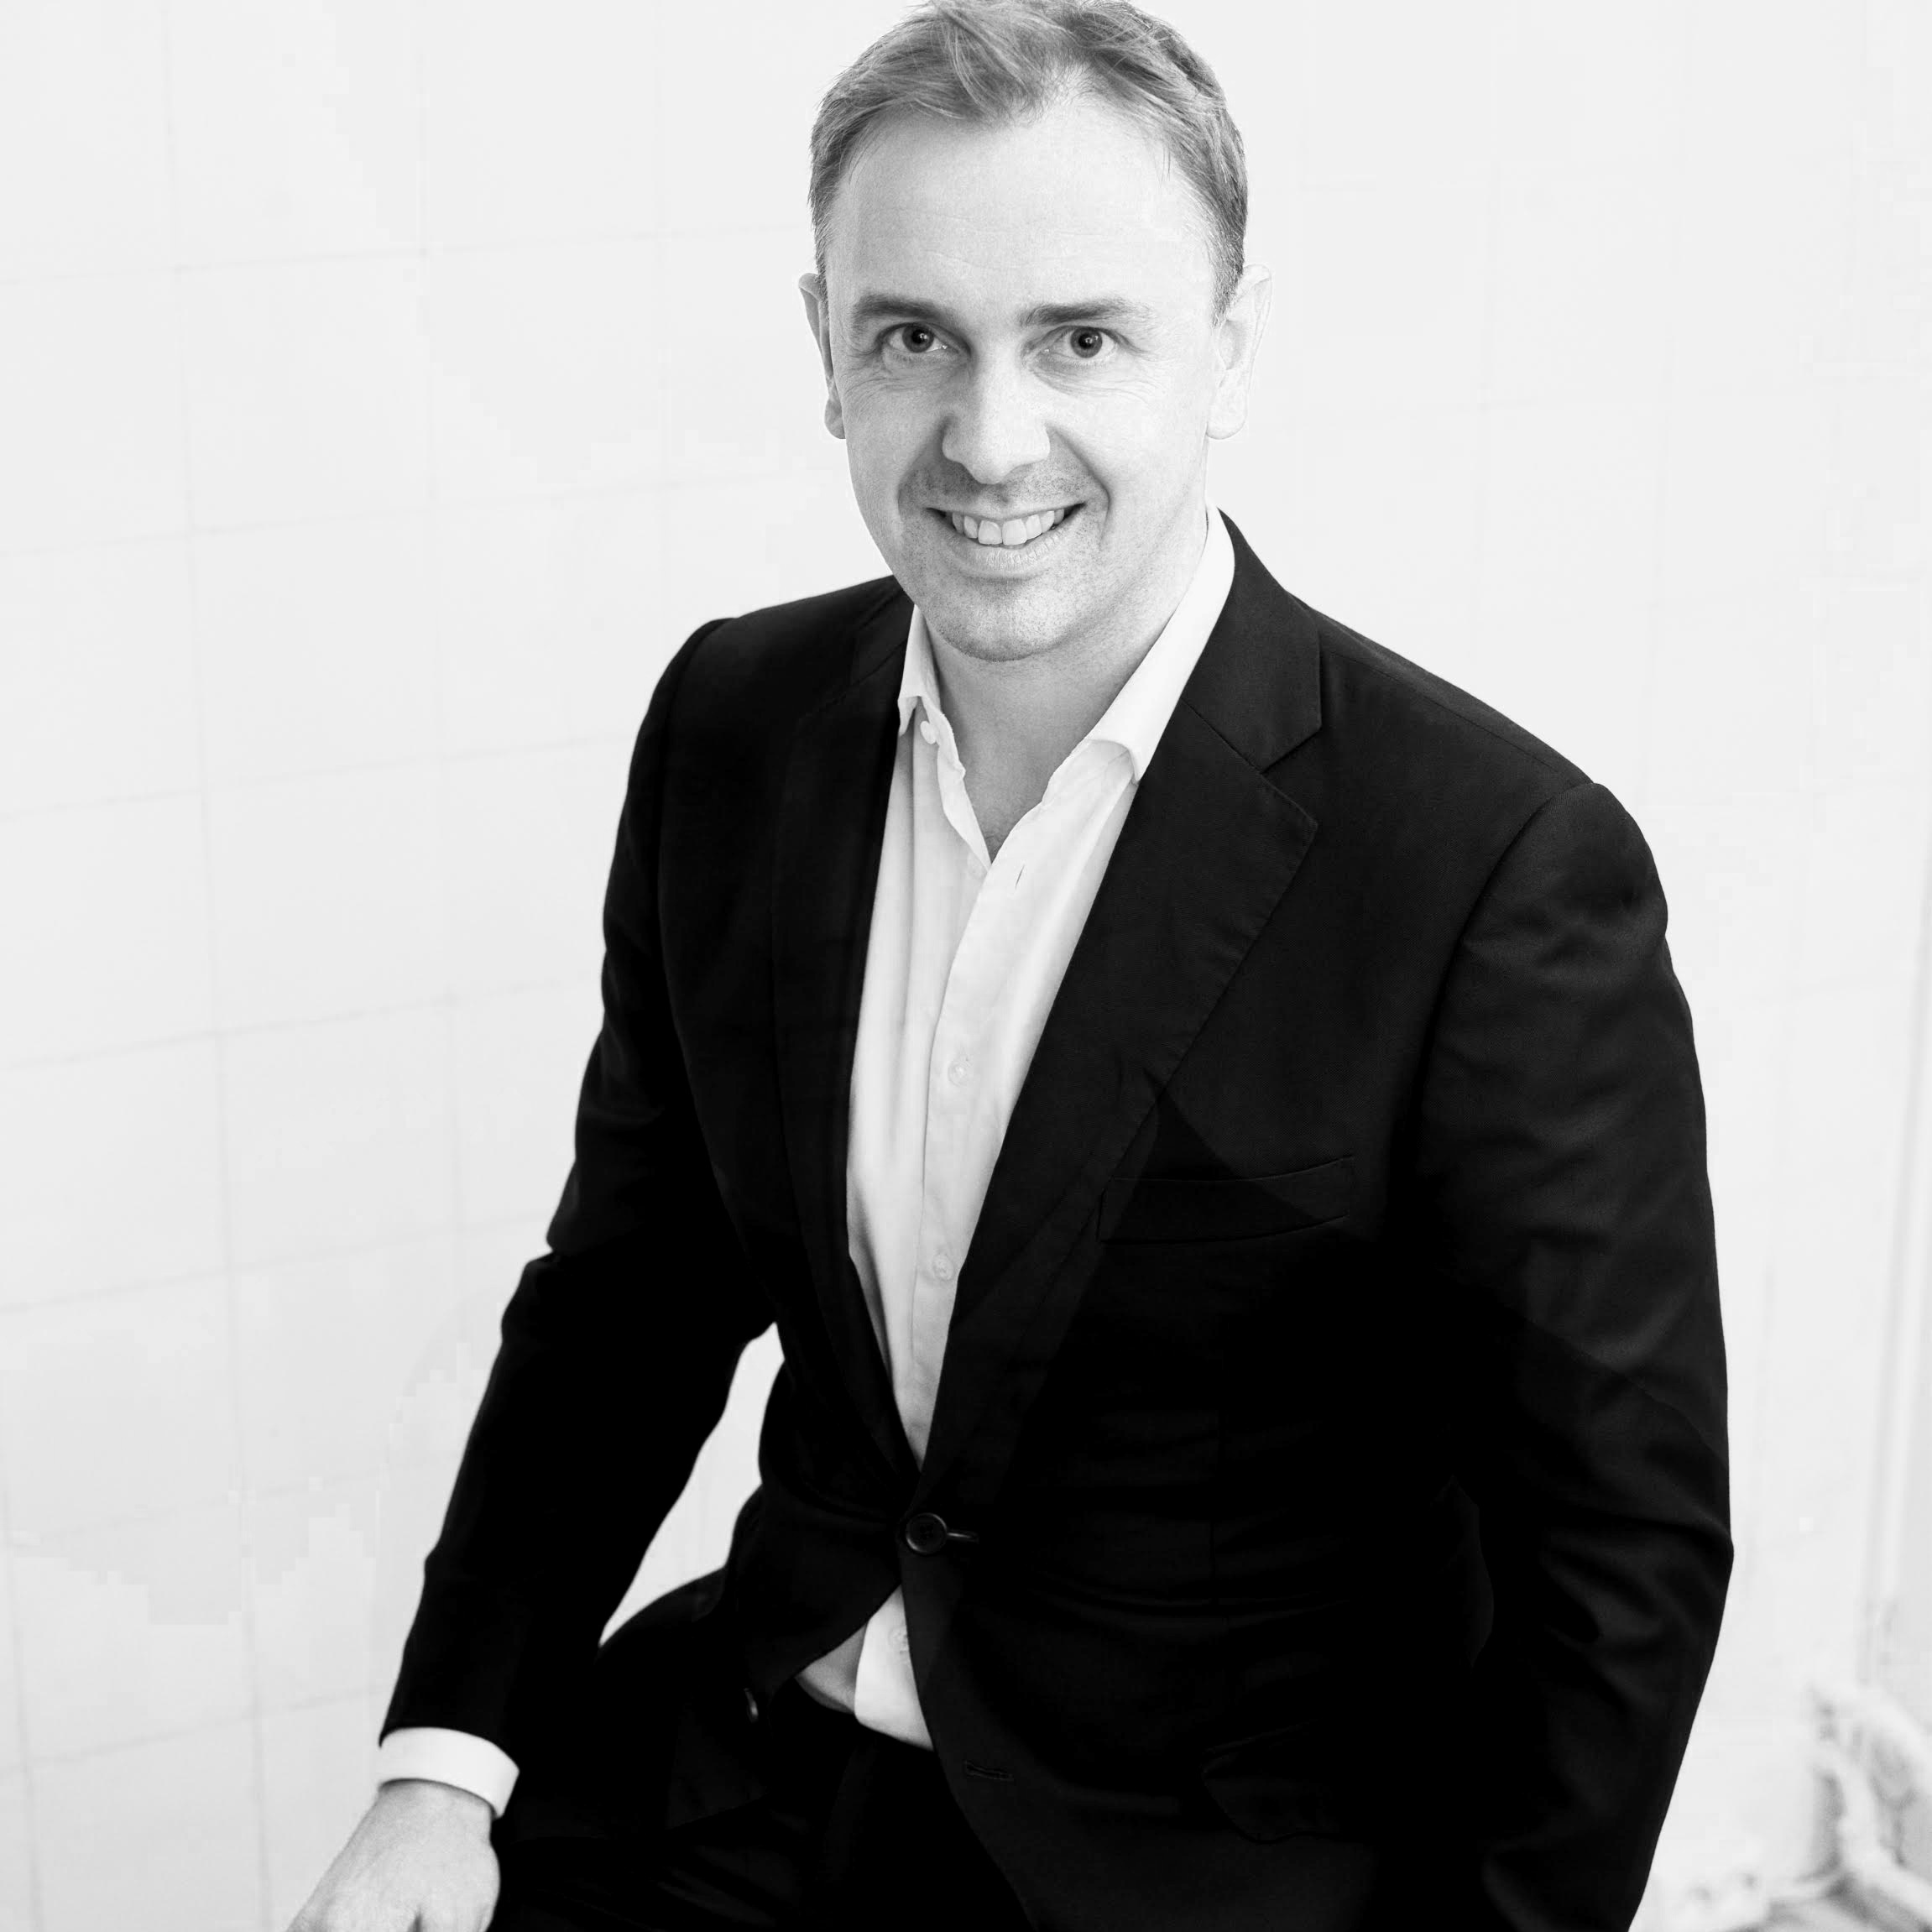 Frank Svenfelt has seven years experience managing renowned Finnish fashion brand Samuji. Prior to that he was in finance.